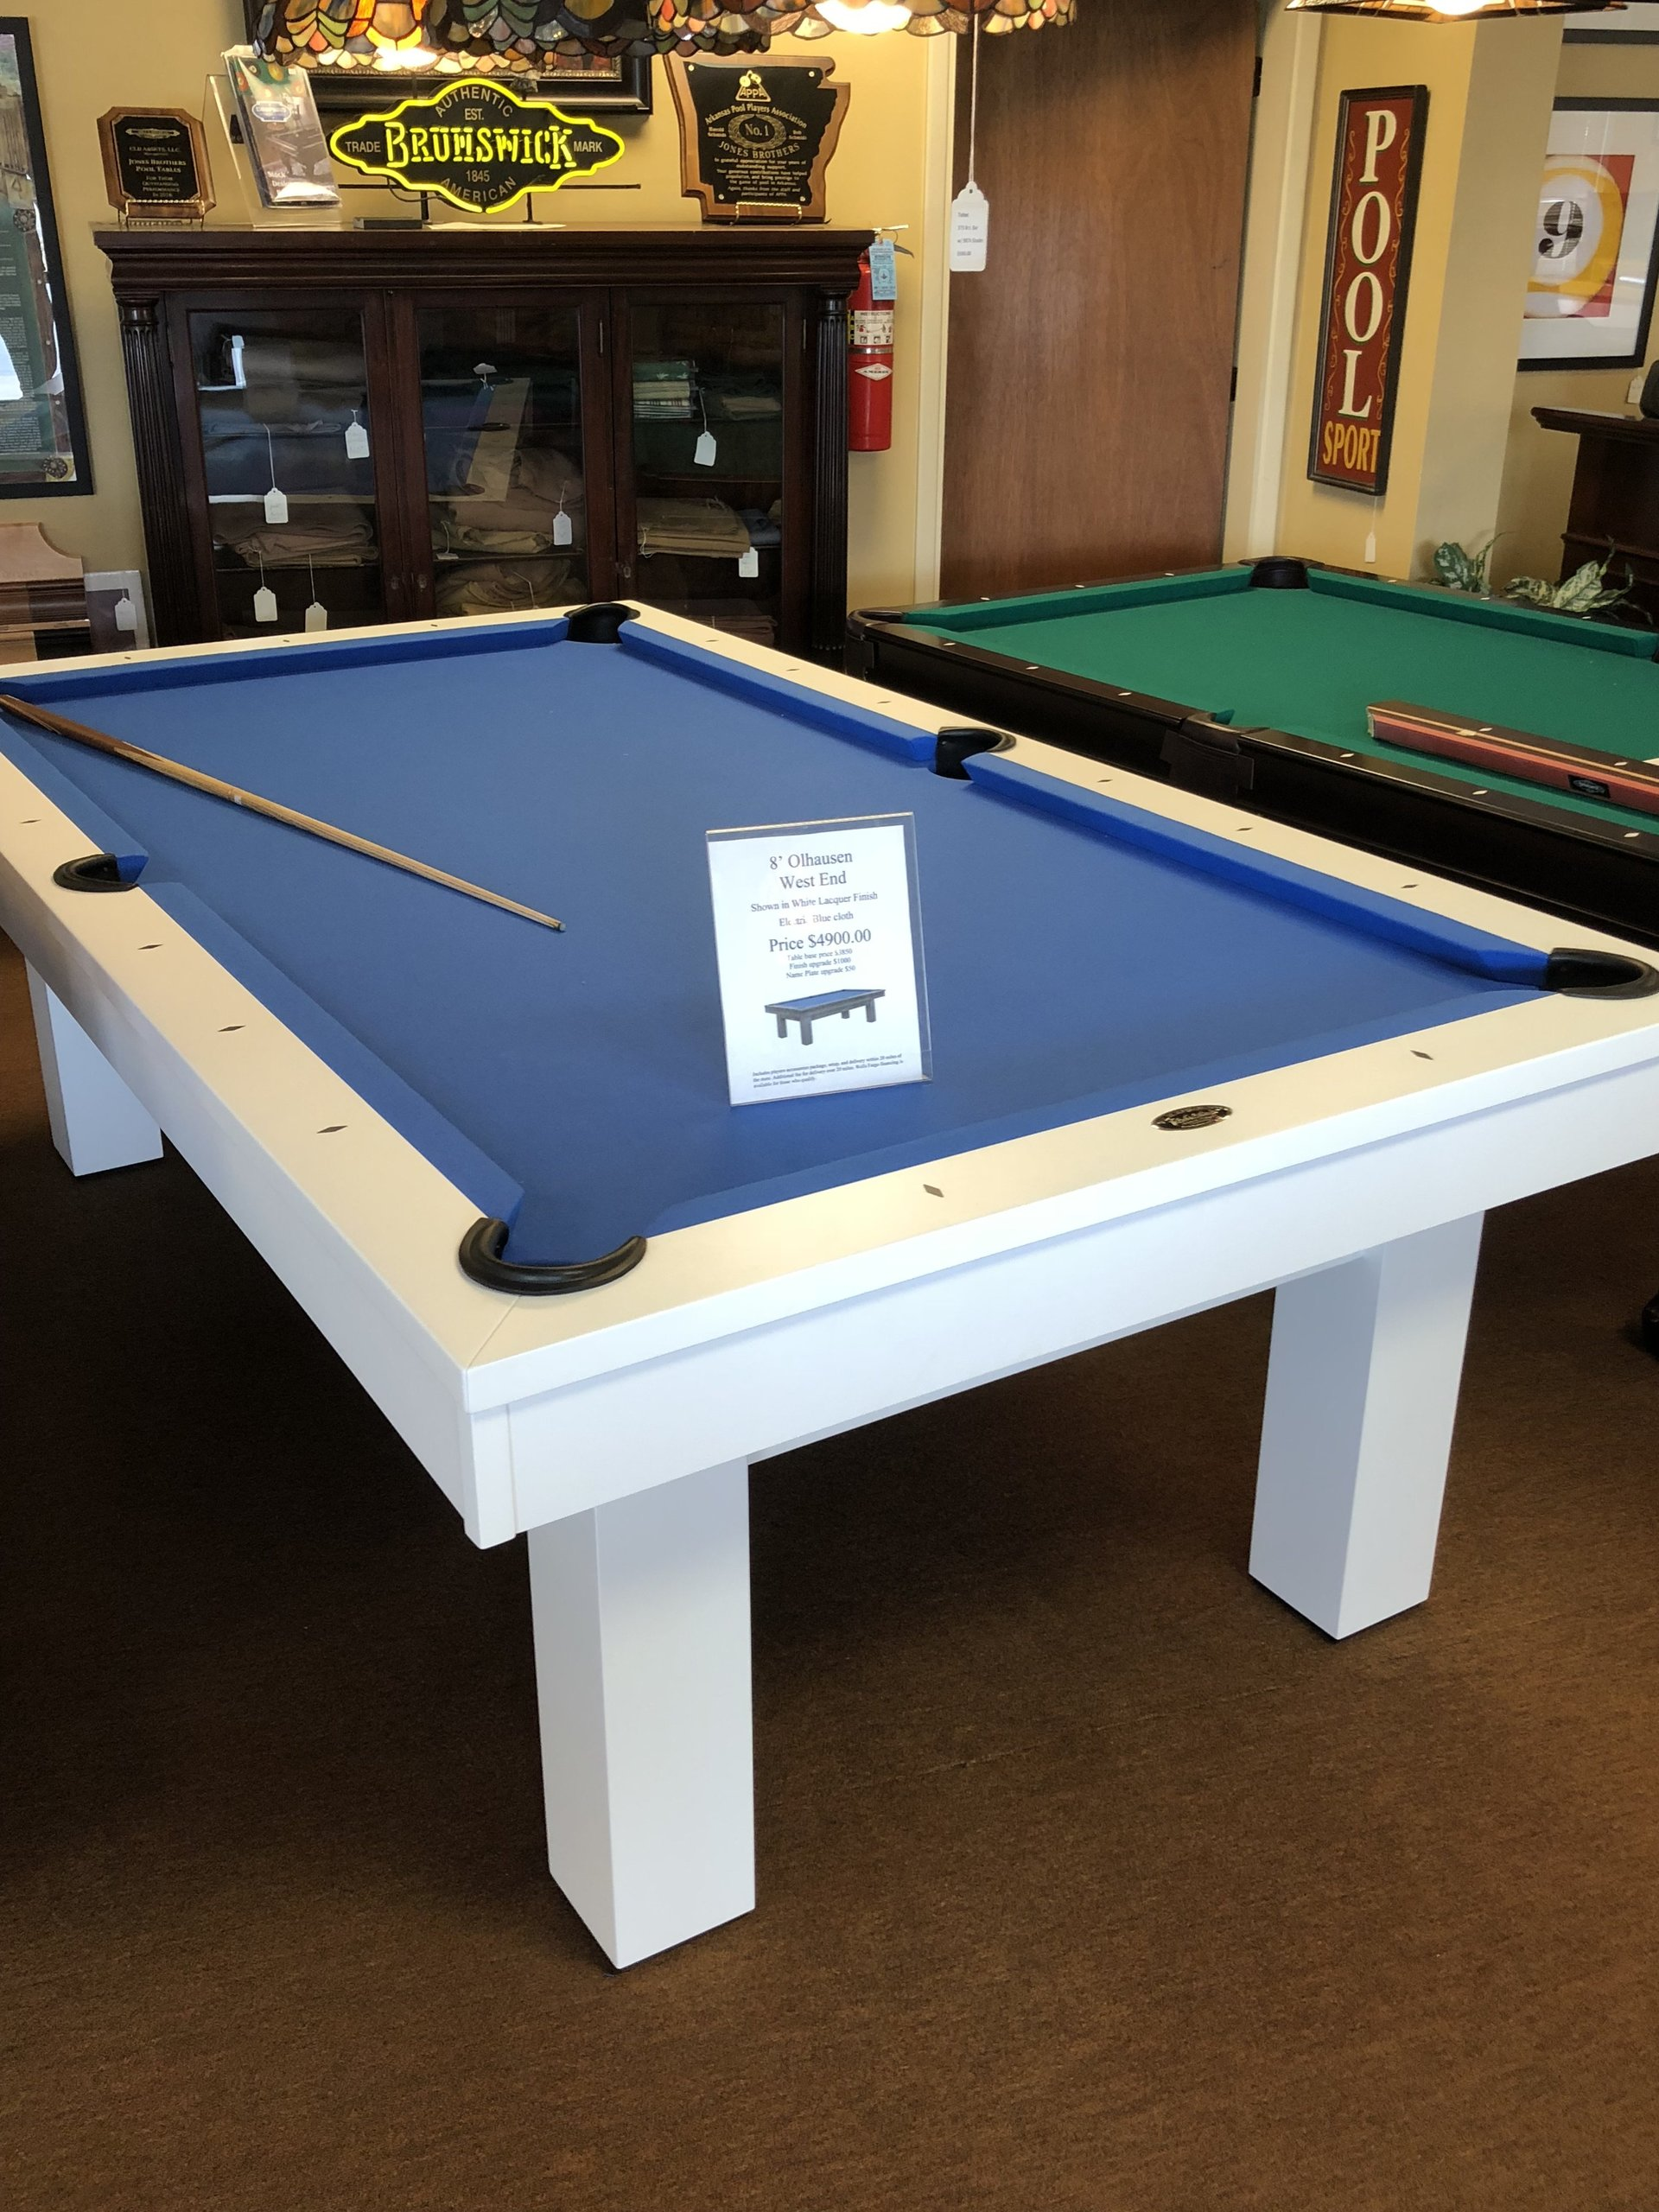 Nearest Pool Table The Best Table - Pool table wraps